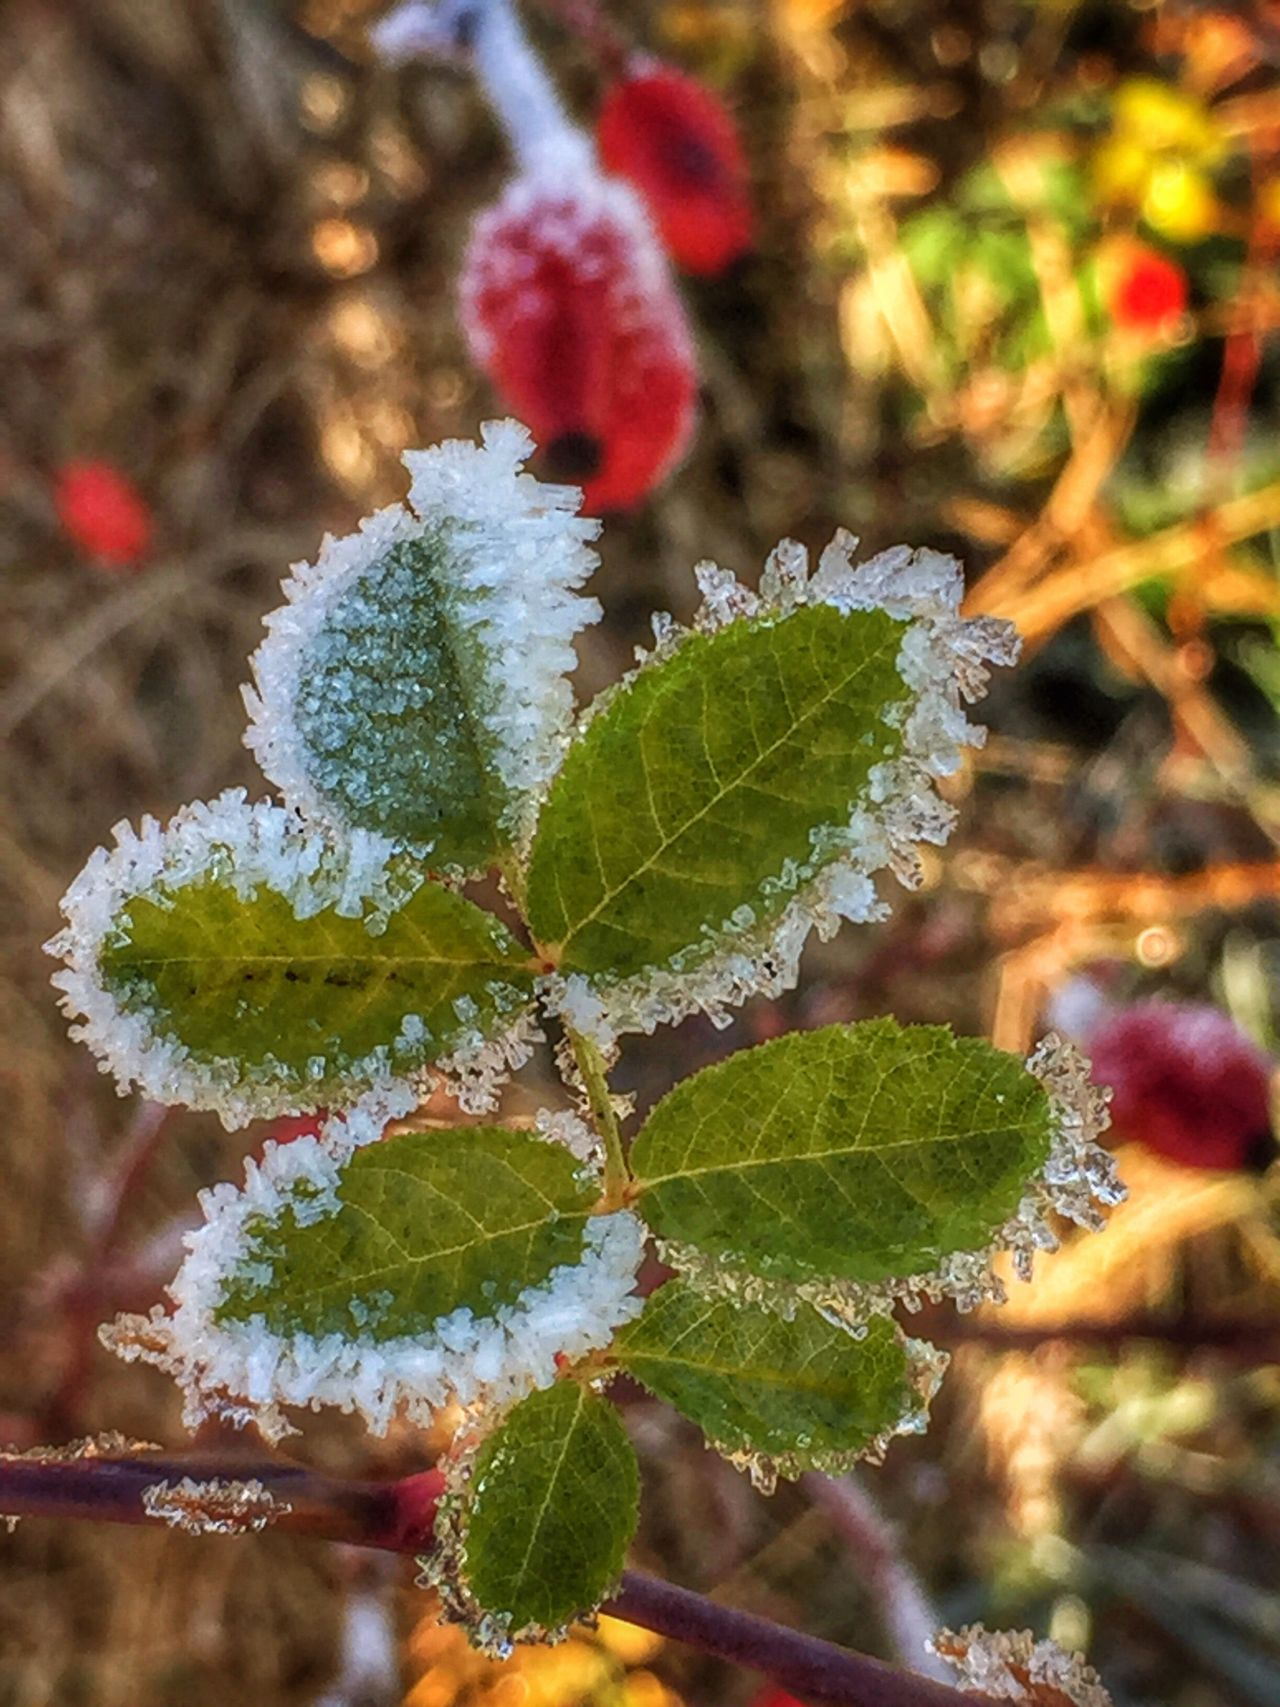 Frosted Rosé Bush Leaves Frosty Frost Frosted Icy Rose Hips Rose Bush Rosé Roses November